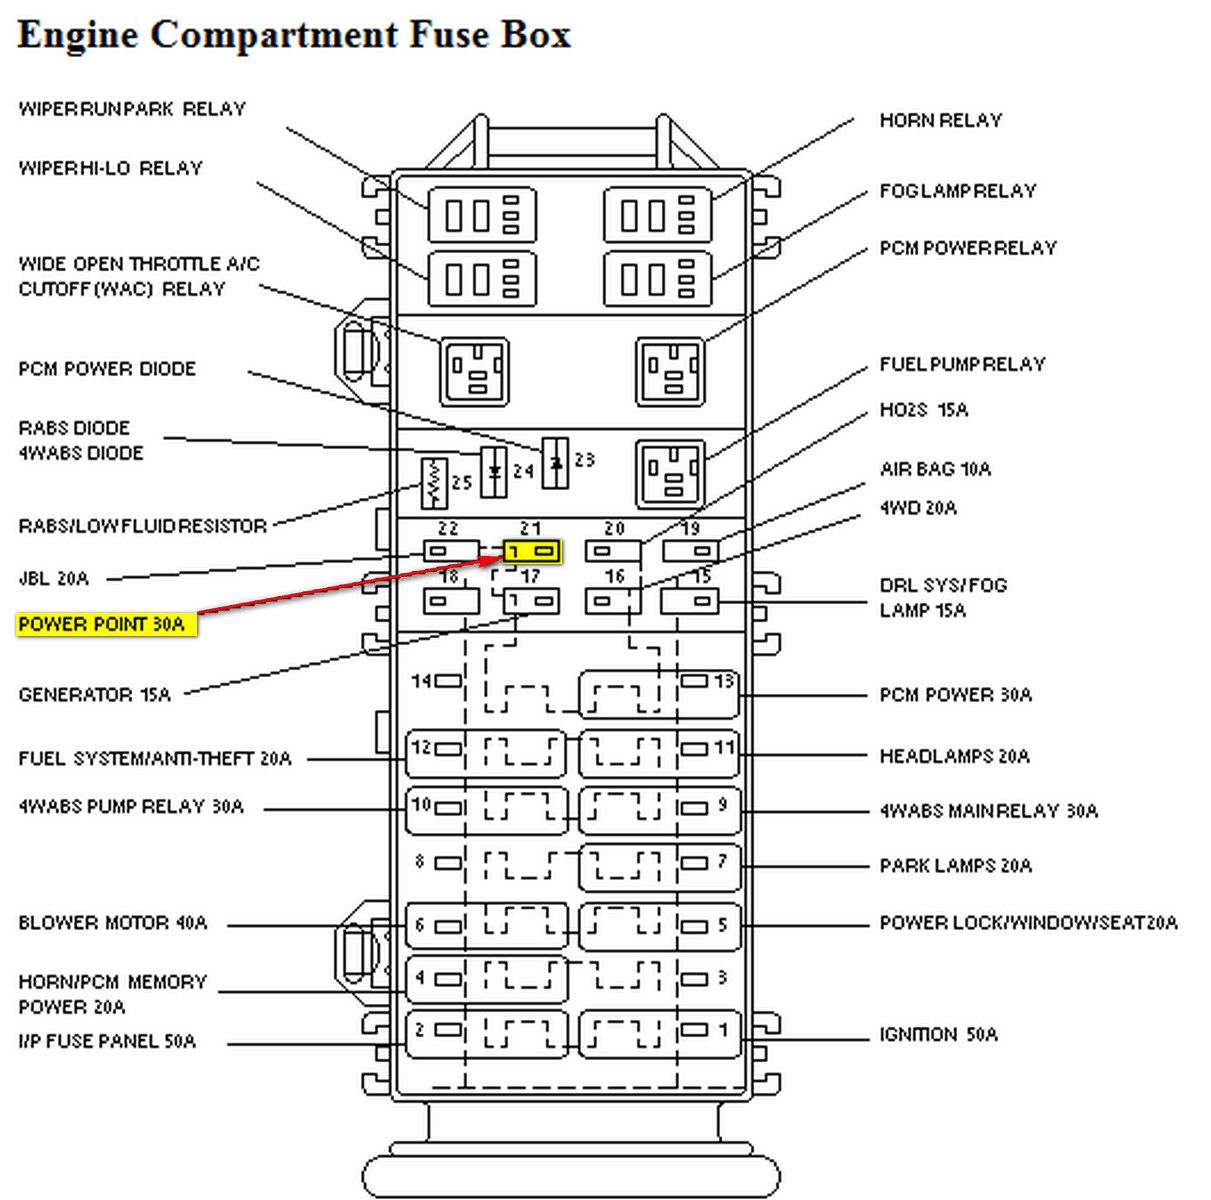 1997 ford ranger fuse box diagram truck part diagrams ford ranger rh  pinterest com ford ranger